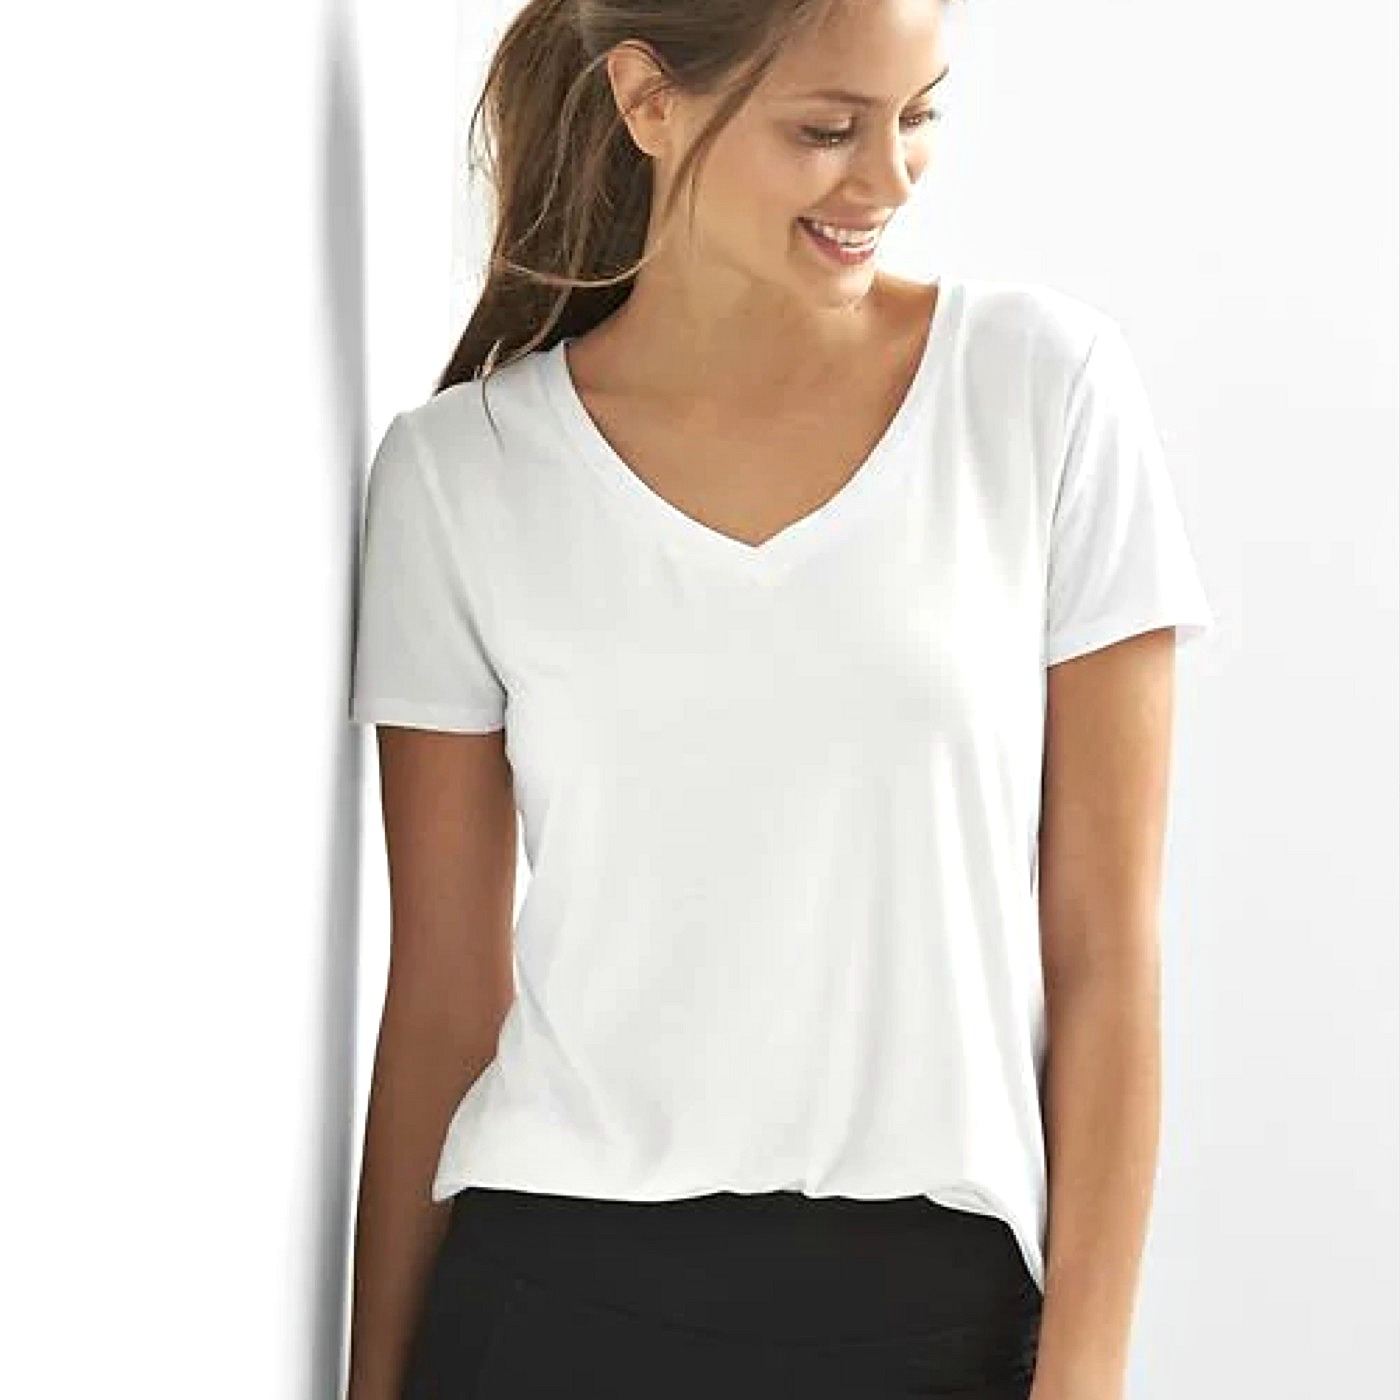 The 10 Best T-Shirts for Women According to Our Readers 487fd6d7892